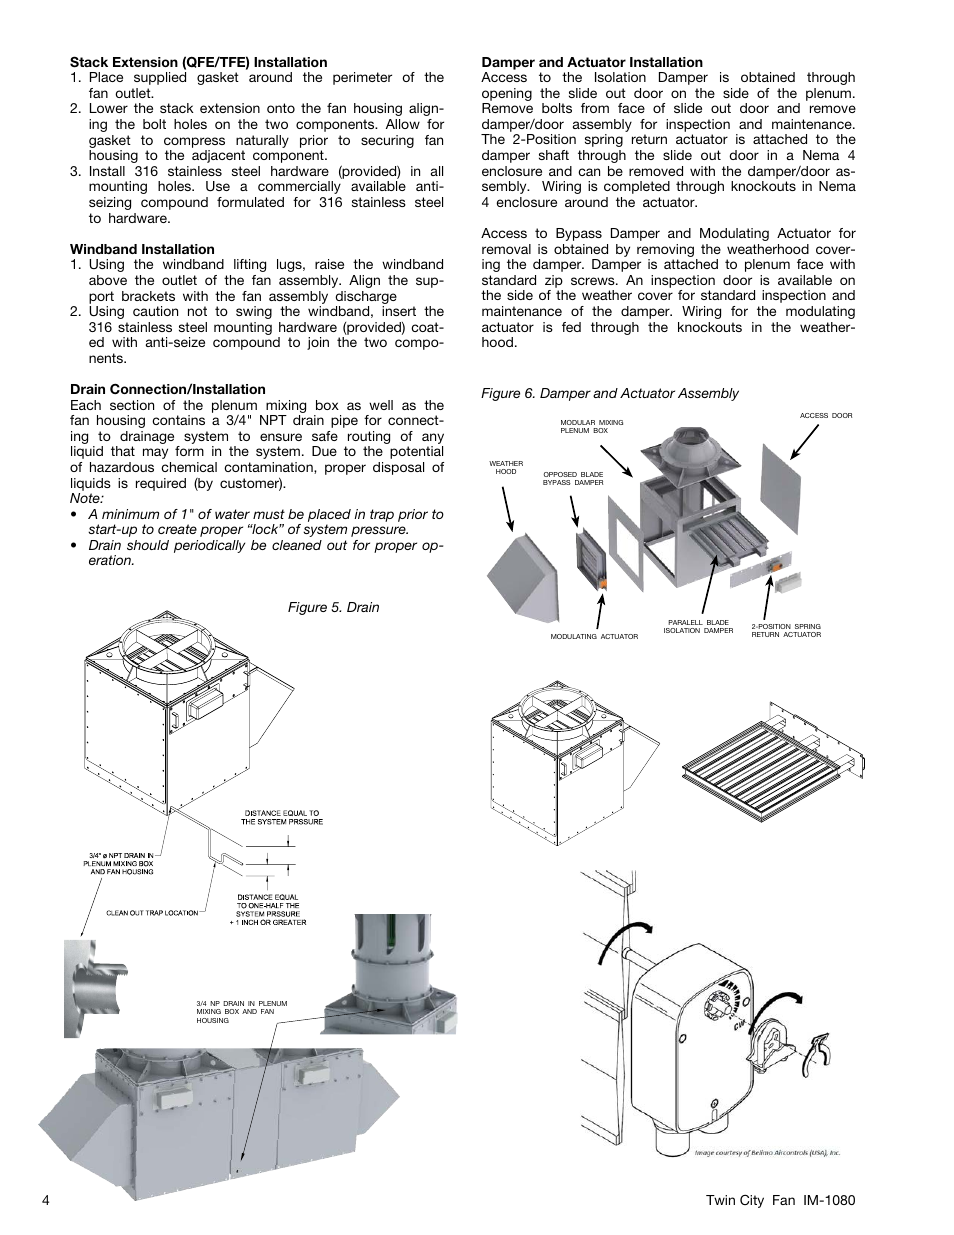 twin city inline fume exhaust fans im 1080 user manual page 4 8 Valve Wiring Diagram